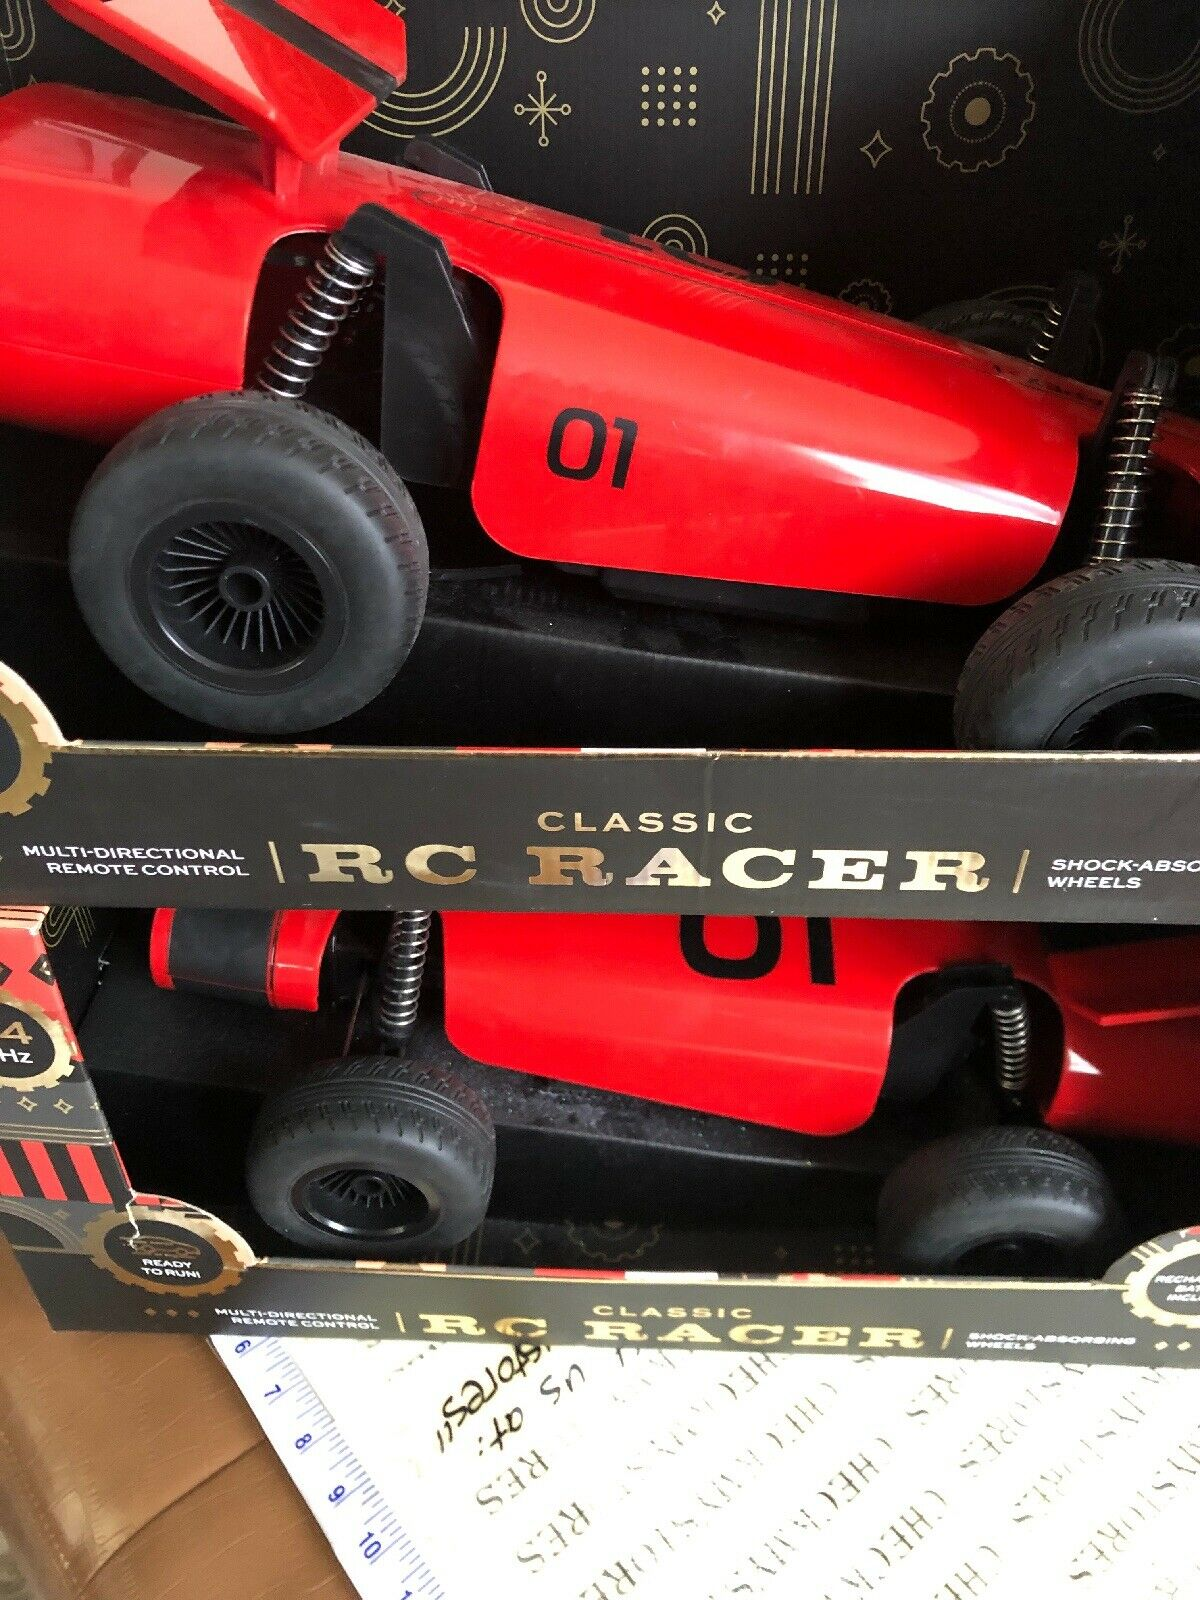 2X FAO Schwartz Classic RC Racer 2.4GHZ with Rechargable Battery Multi-Directio